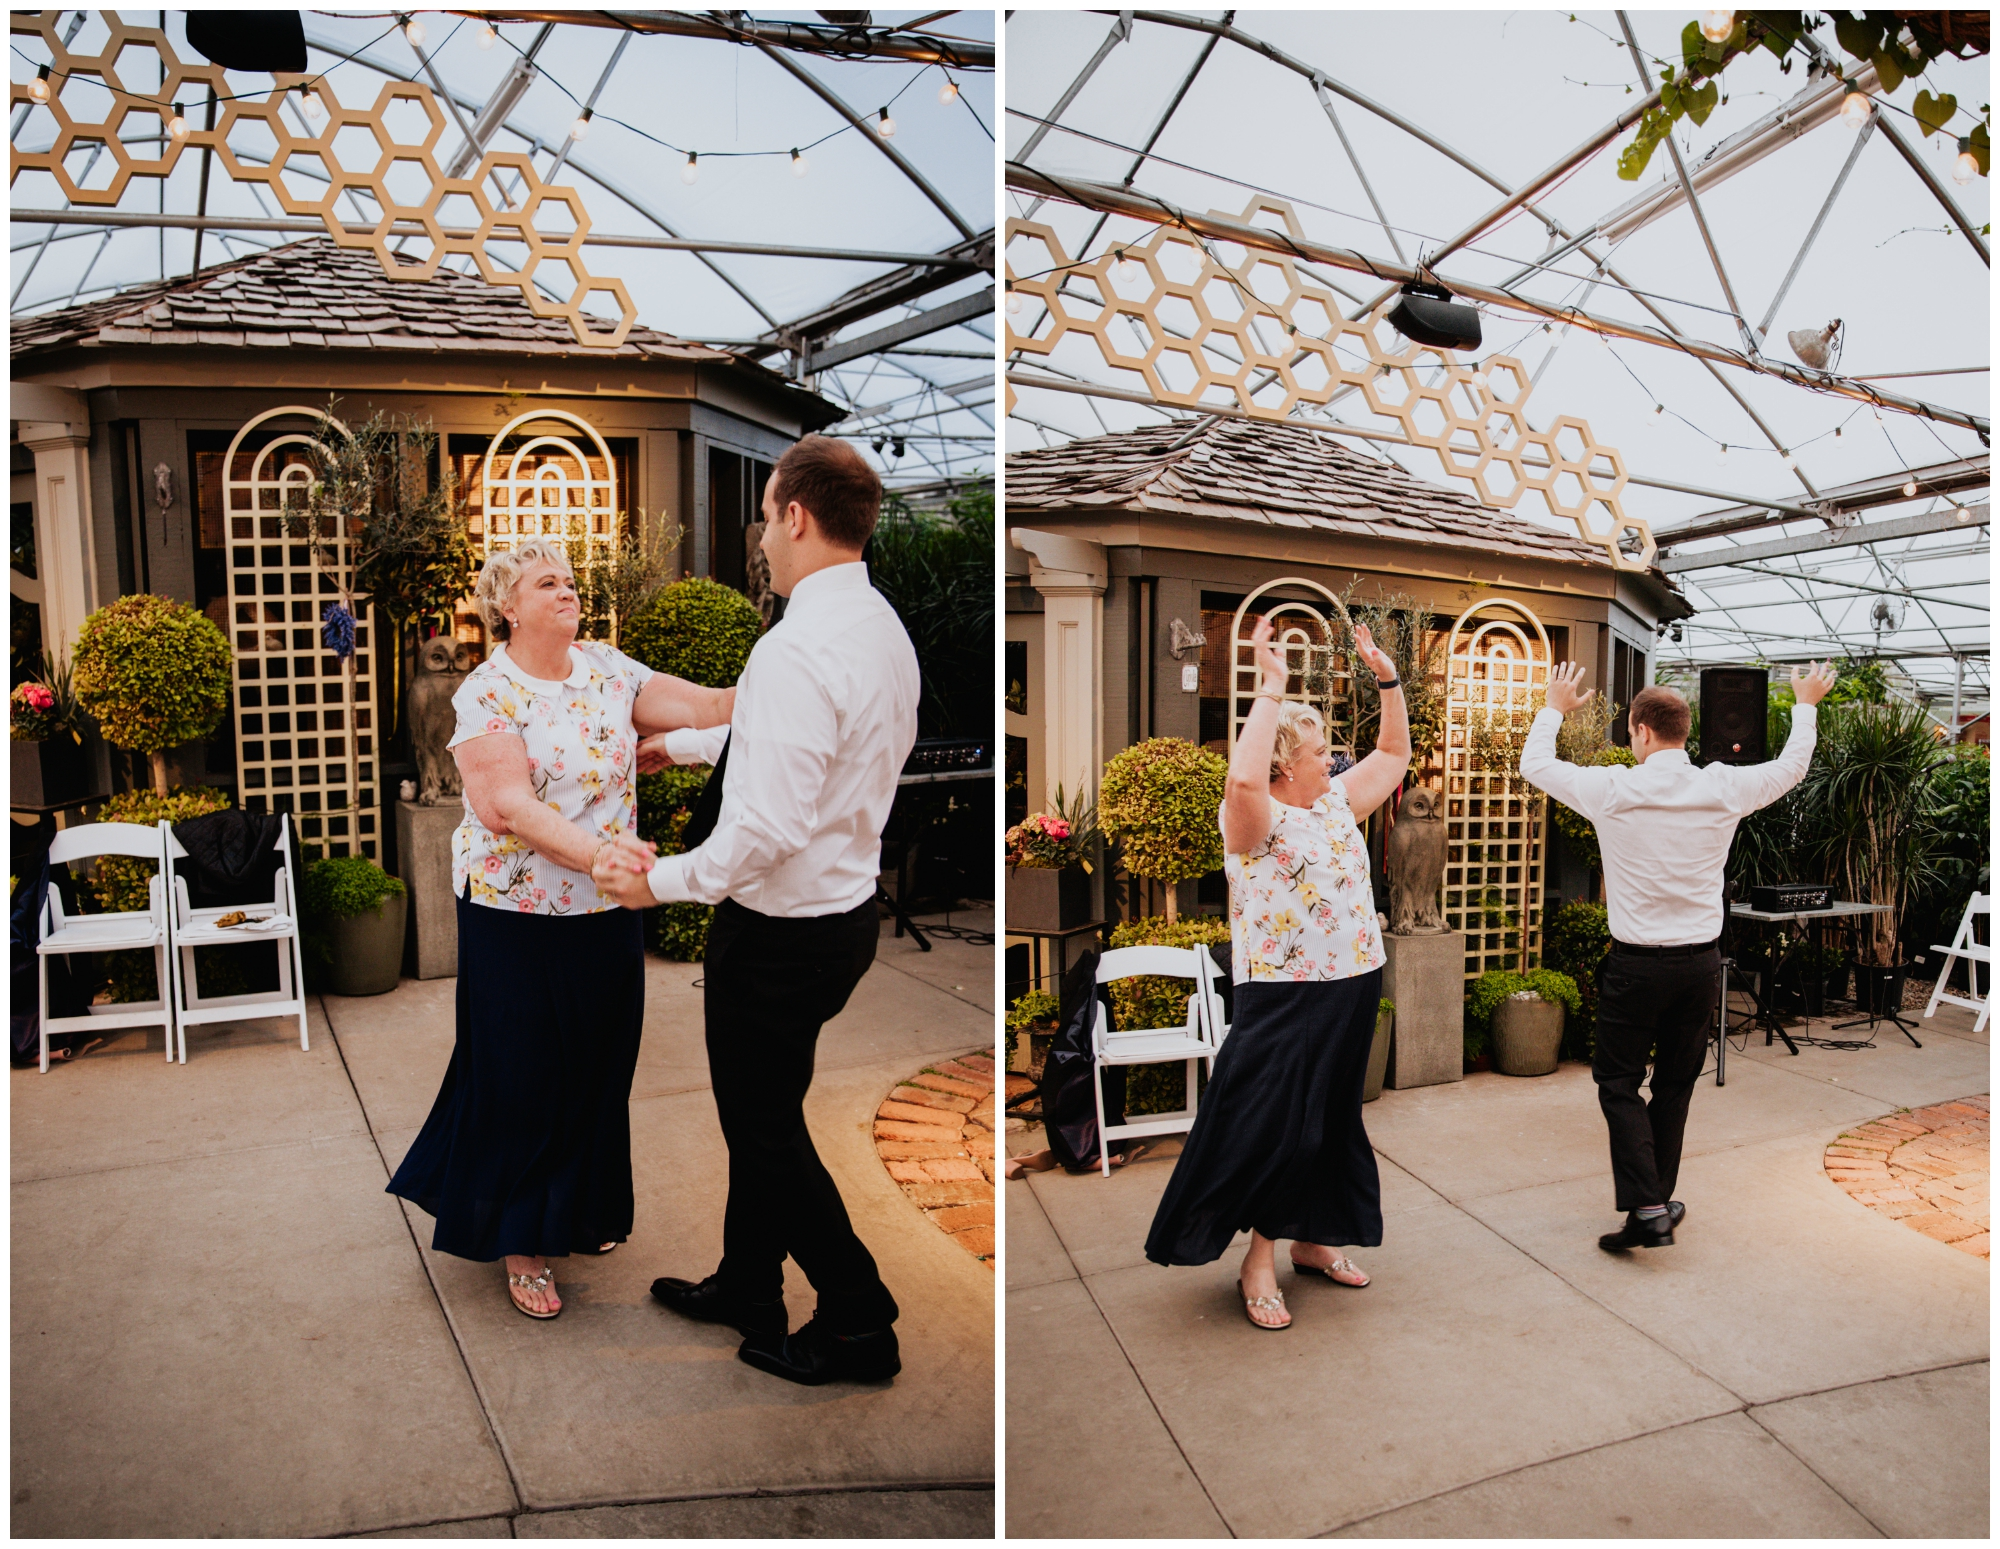 2018.05.02 AS Wedding 15.jpg